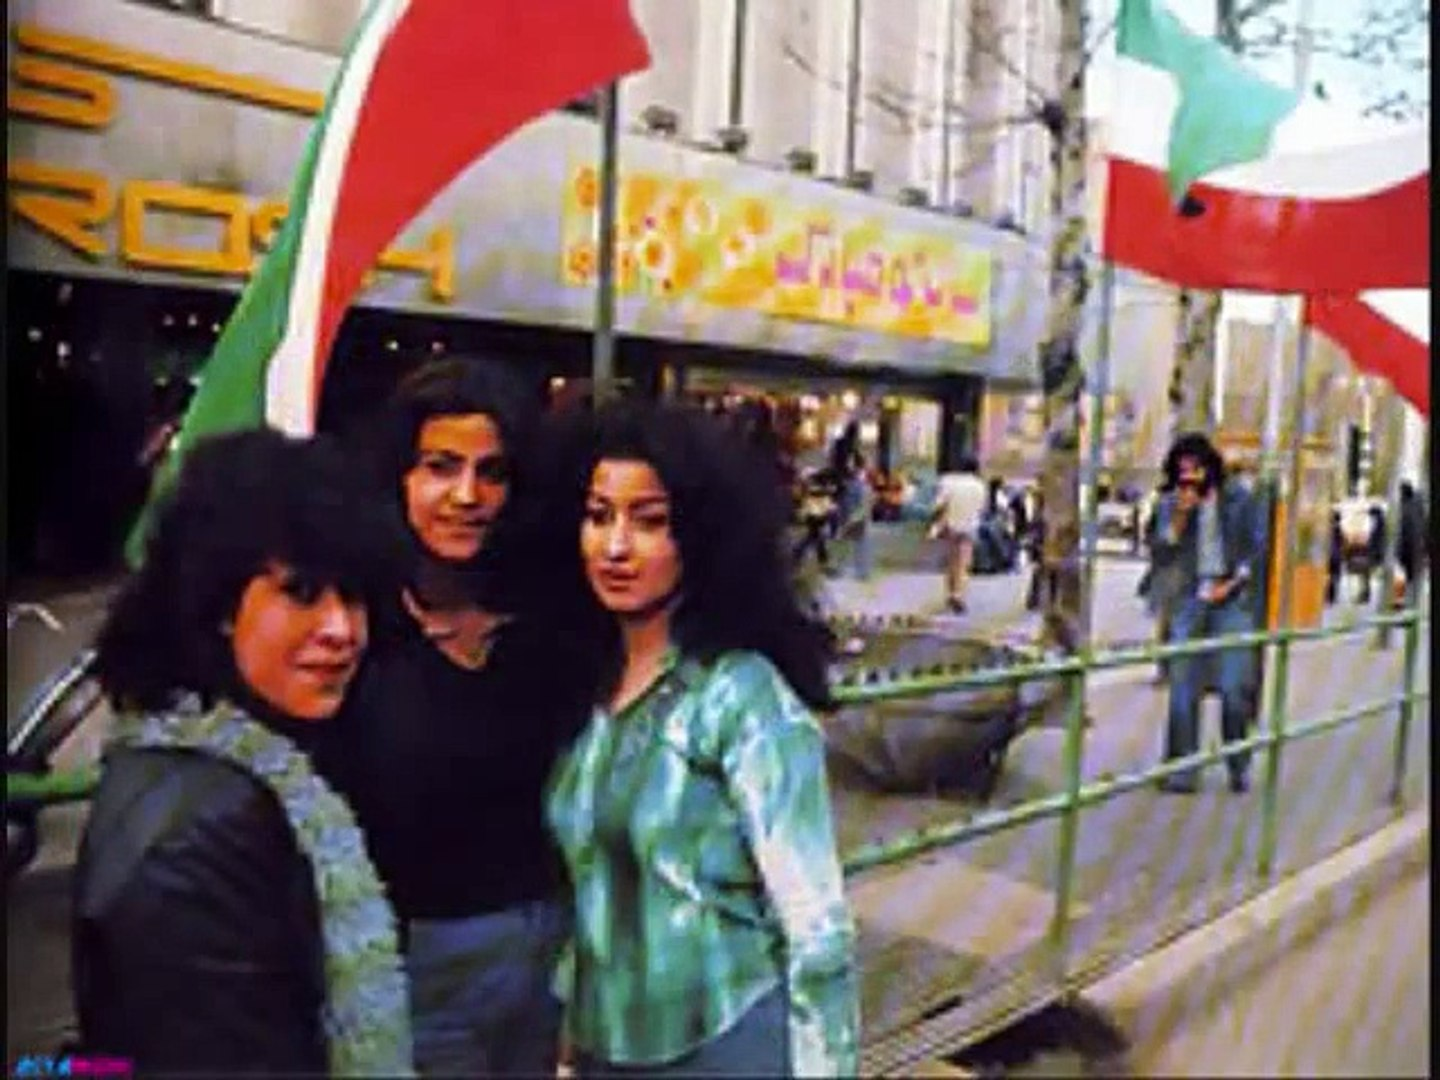 Iran Before 1979 in the eys of history